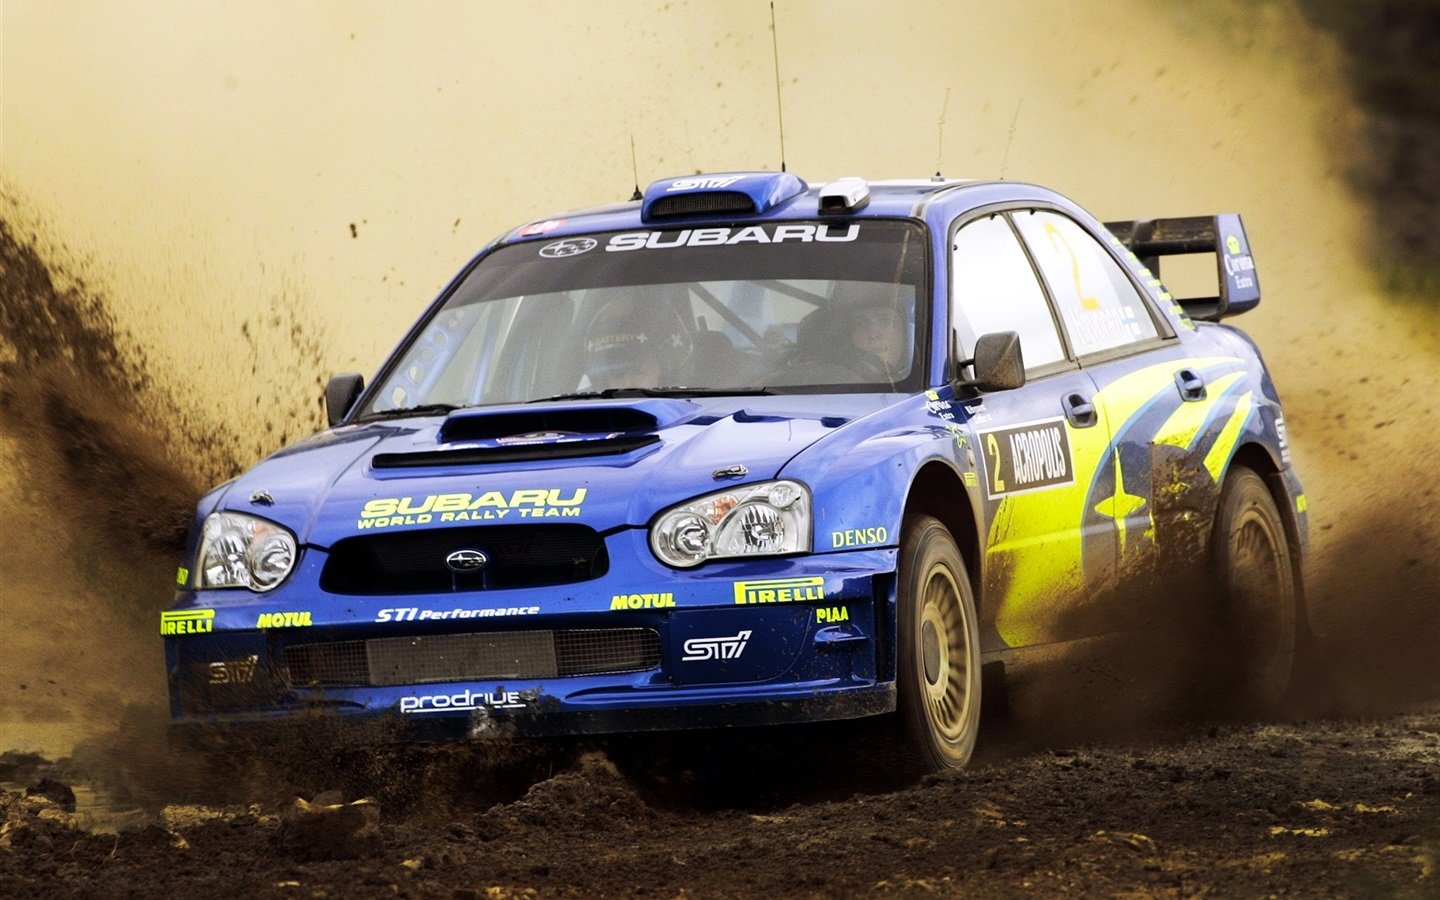 Subaru Impreza Rally Dirt Wallpaper 1440x900 resolution wallpaper 1440x900